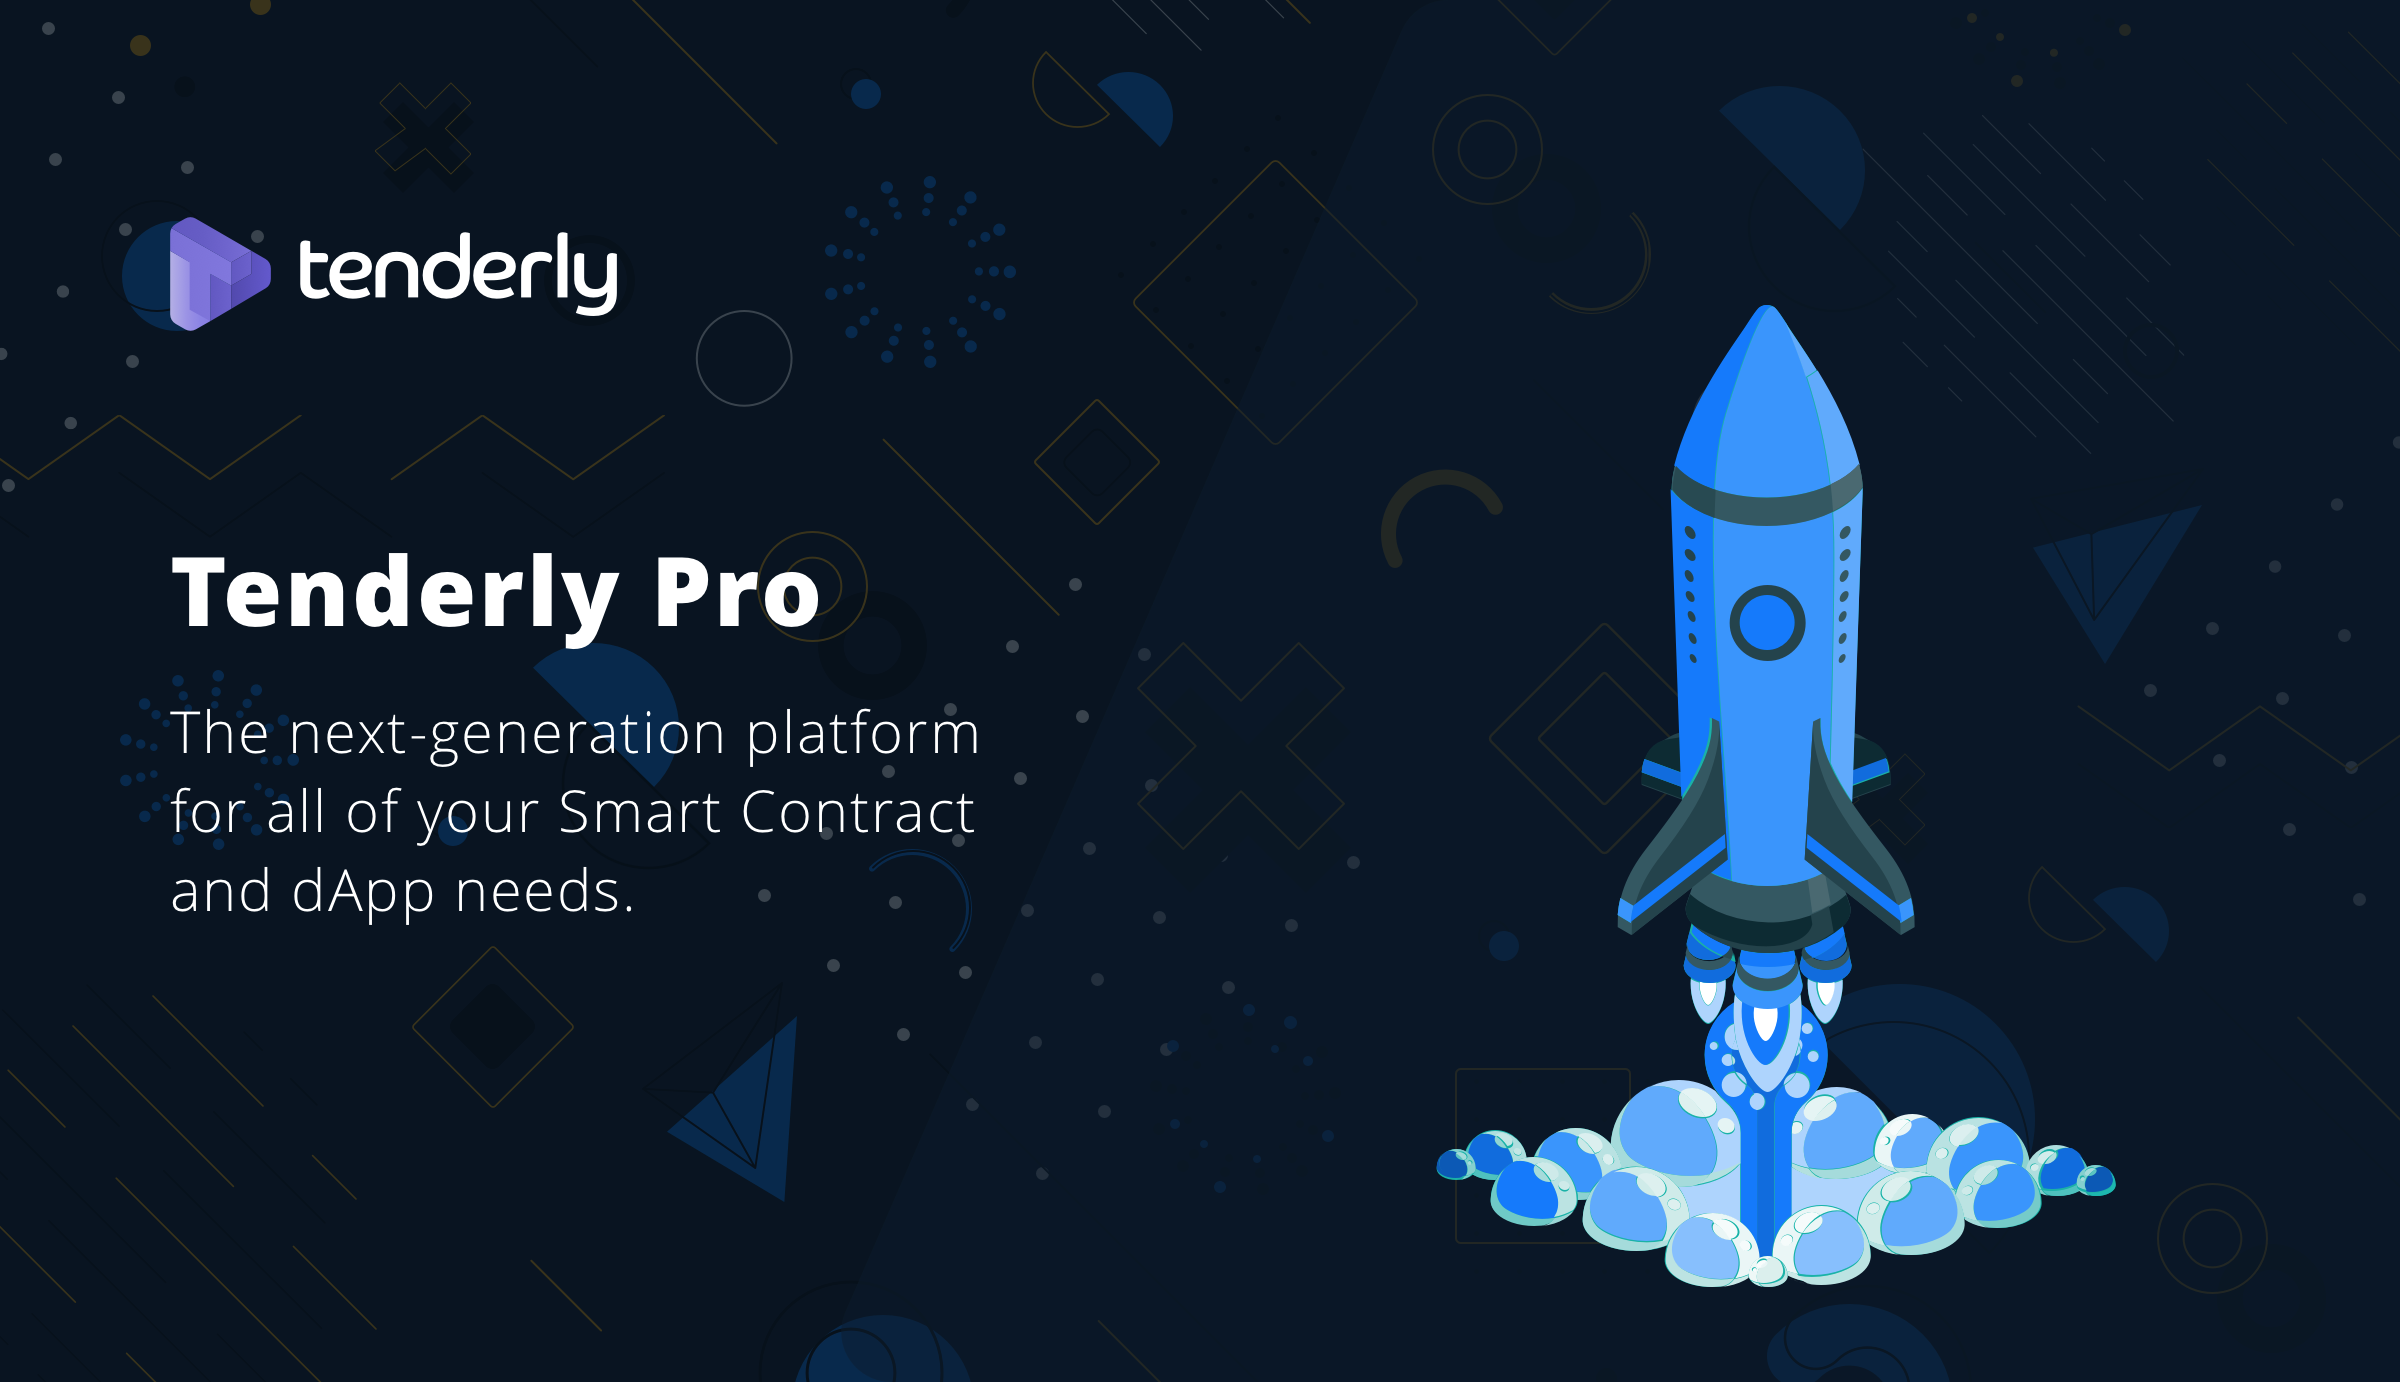 Say Hello to Tenderly Pro